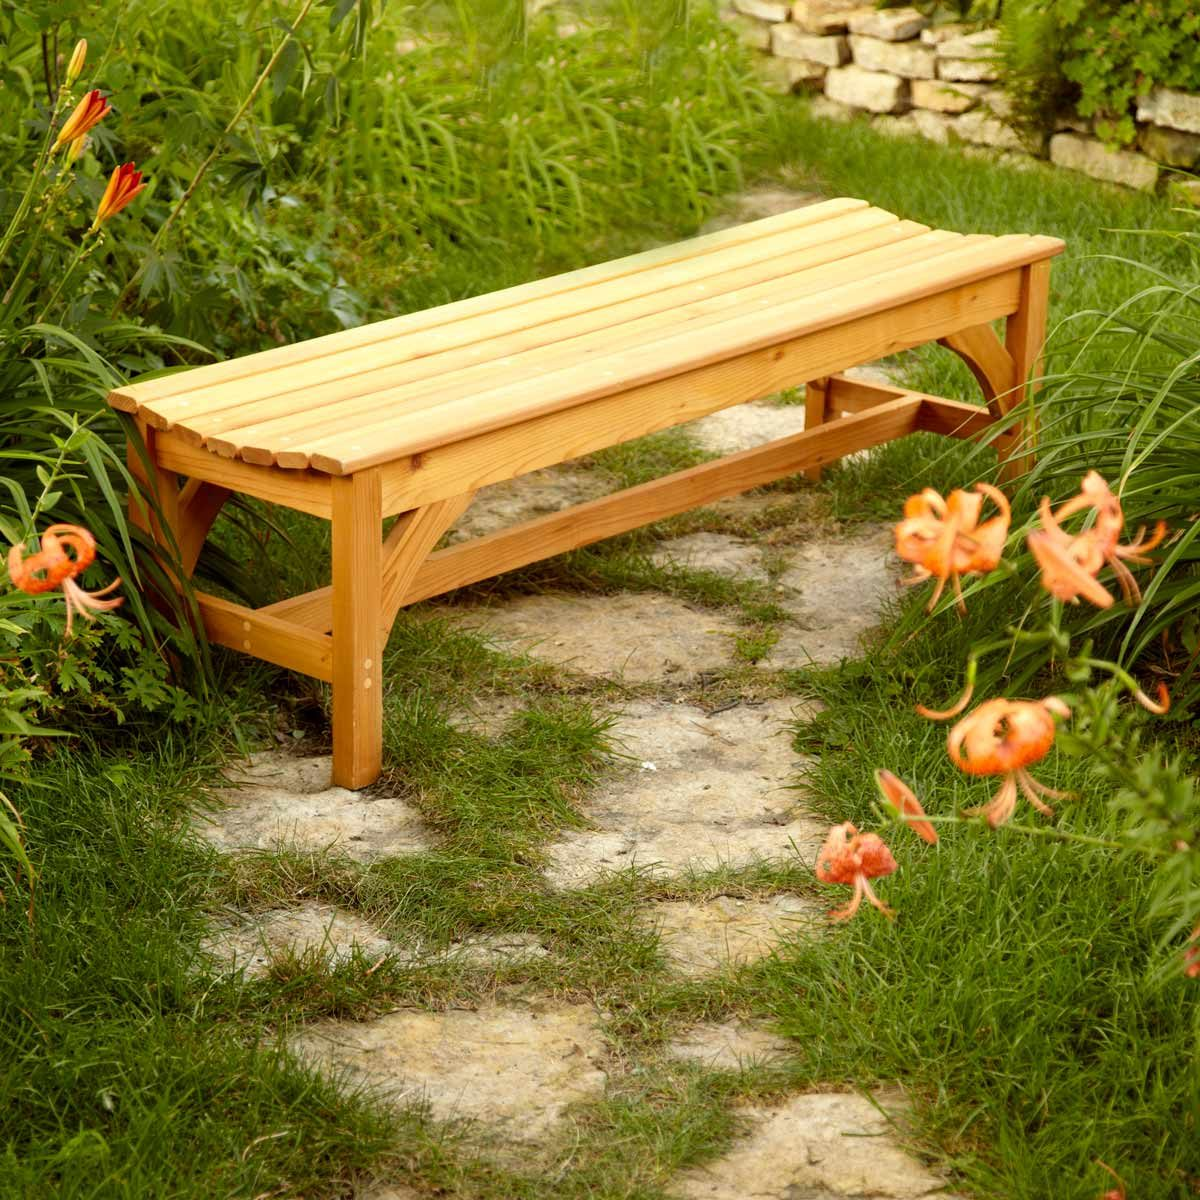 40 outdoor woodworking projects for beginners — the family